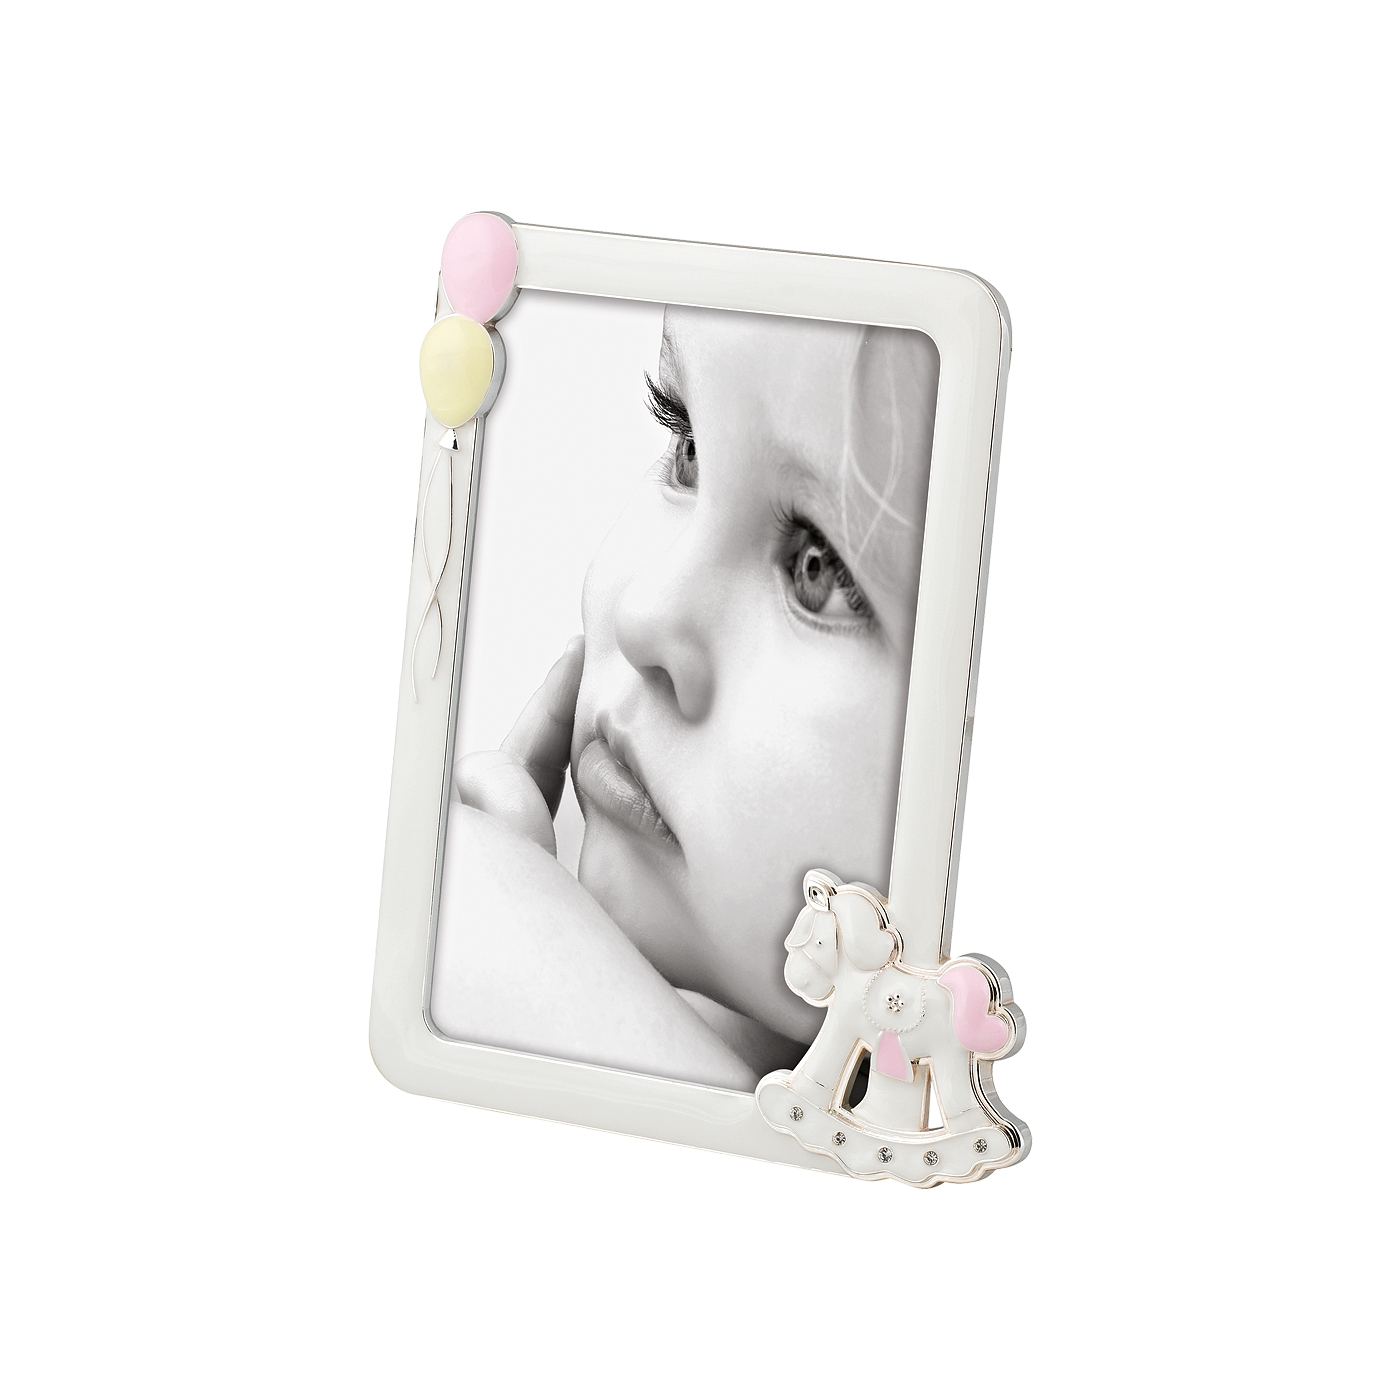 A779 BABY HORSE PINK FRAME 10x15